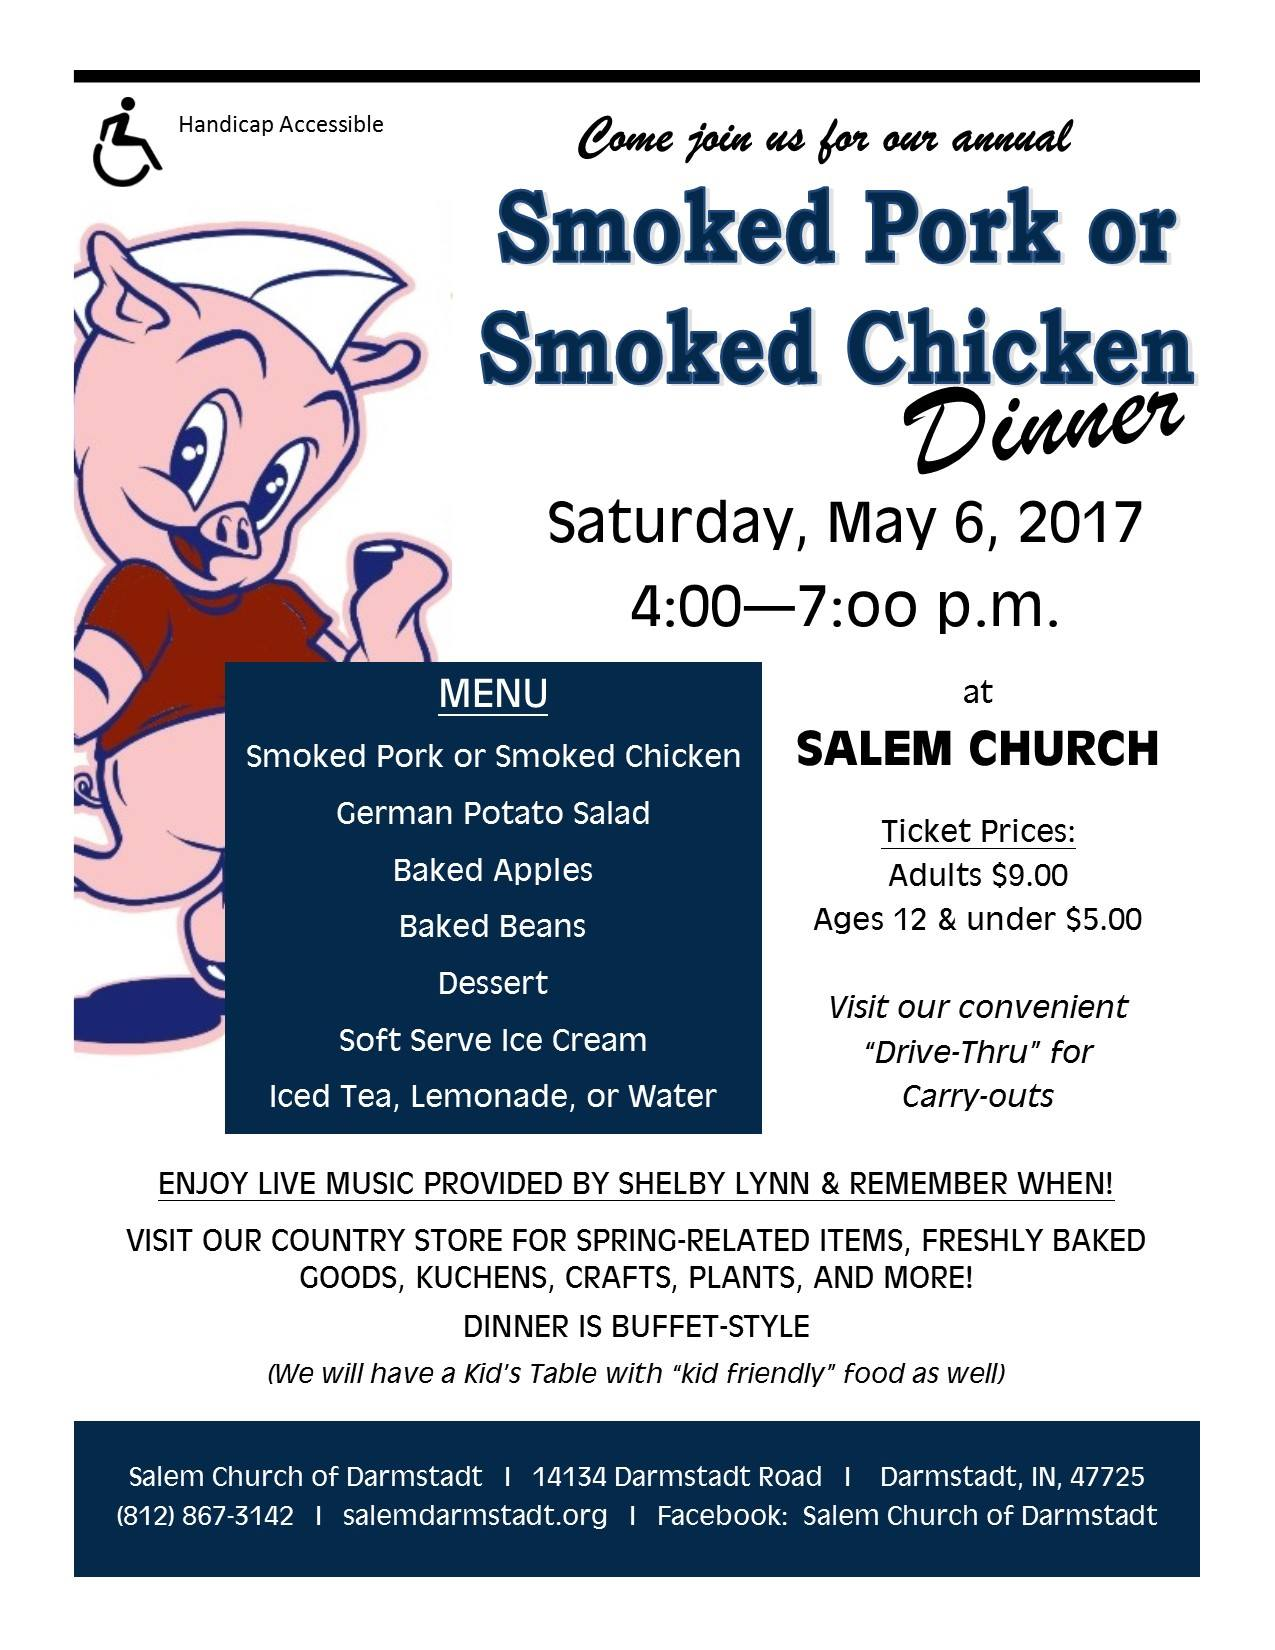 Smoked Pork or Smoked Chicken Dinner – Salem Church of Darmstadt